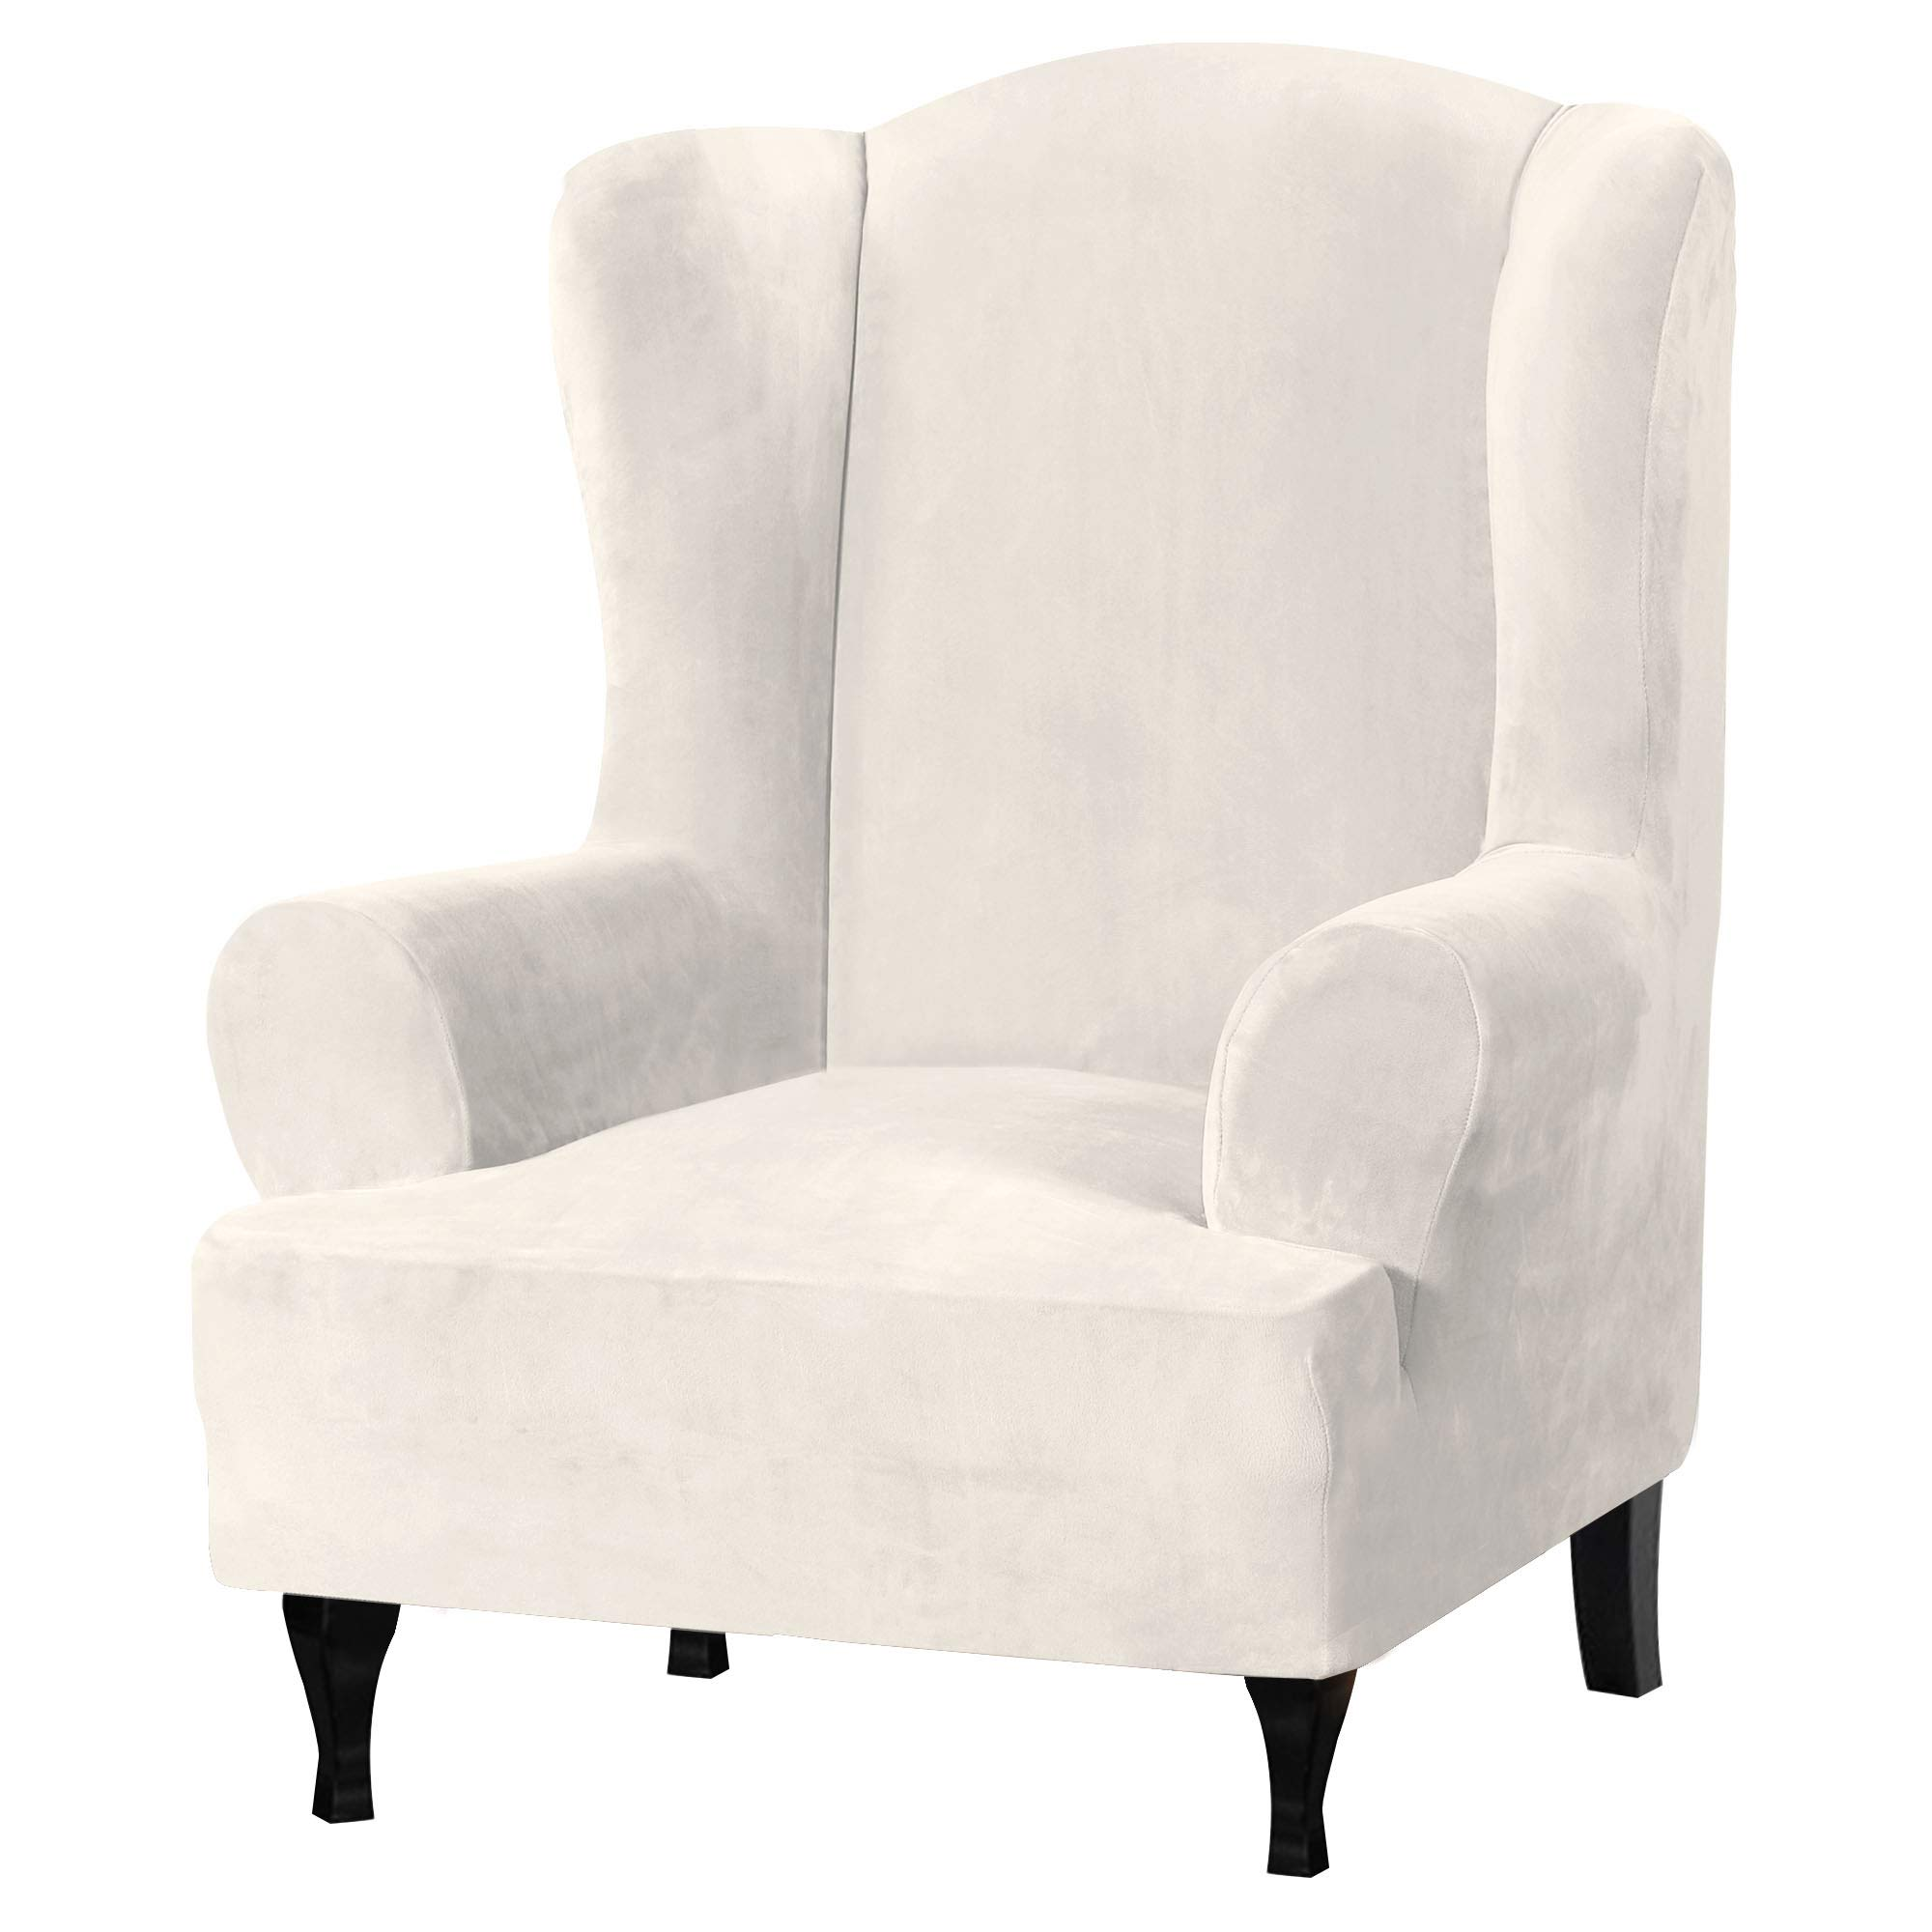 Velvet Plush Stretch Wingback Chair Covers Wing Chair Slipcover Wing Chair Covera Furniture Covers For Wingback Chairs Living Room Feature Soft Thick Smooth Fabric Machine Washable Off White Kitchen Dining